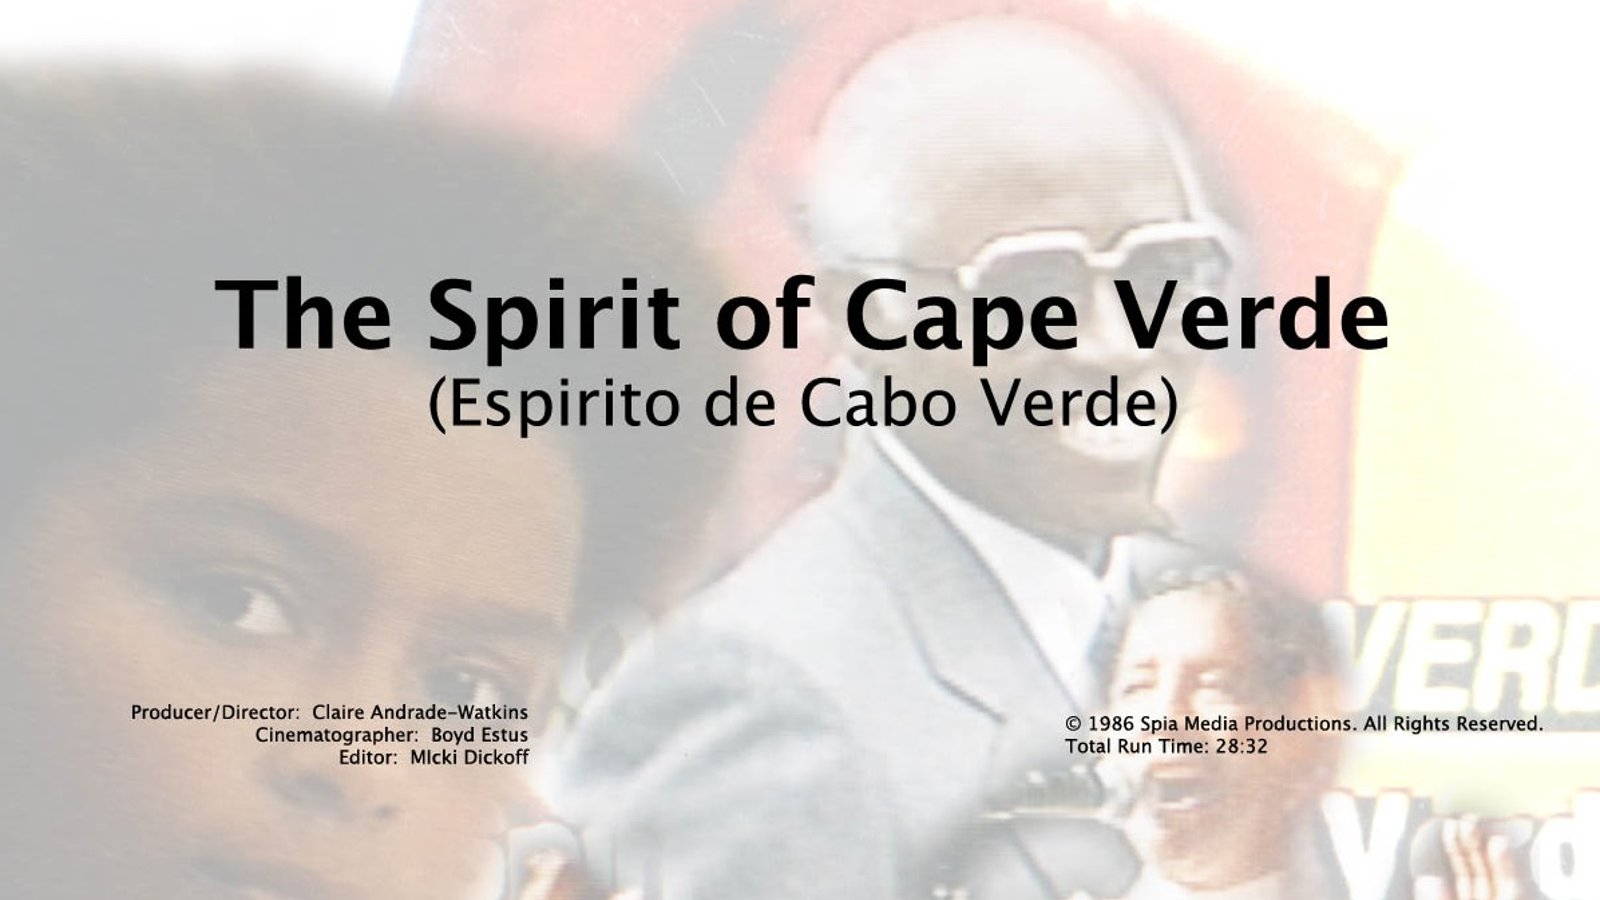 Spirit of Cape Verde - The First President of Cape Verde After Independence Visits New England